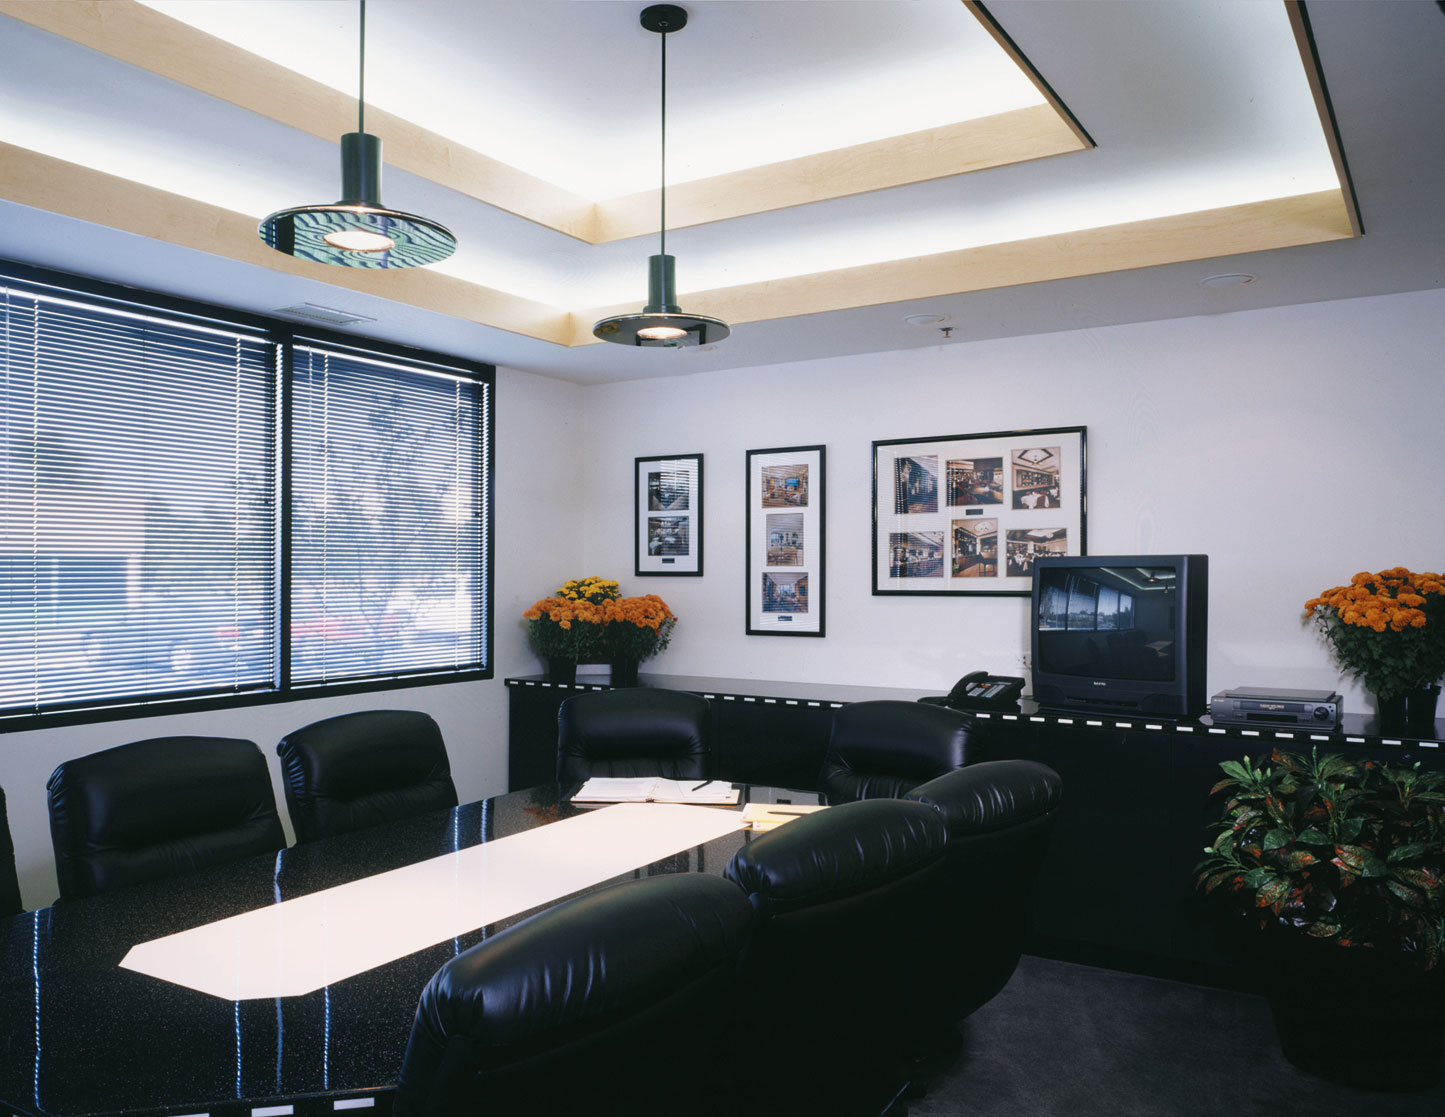 CONFERENCE-ROOM-2x.jpg